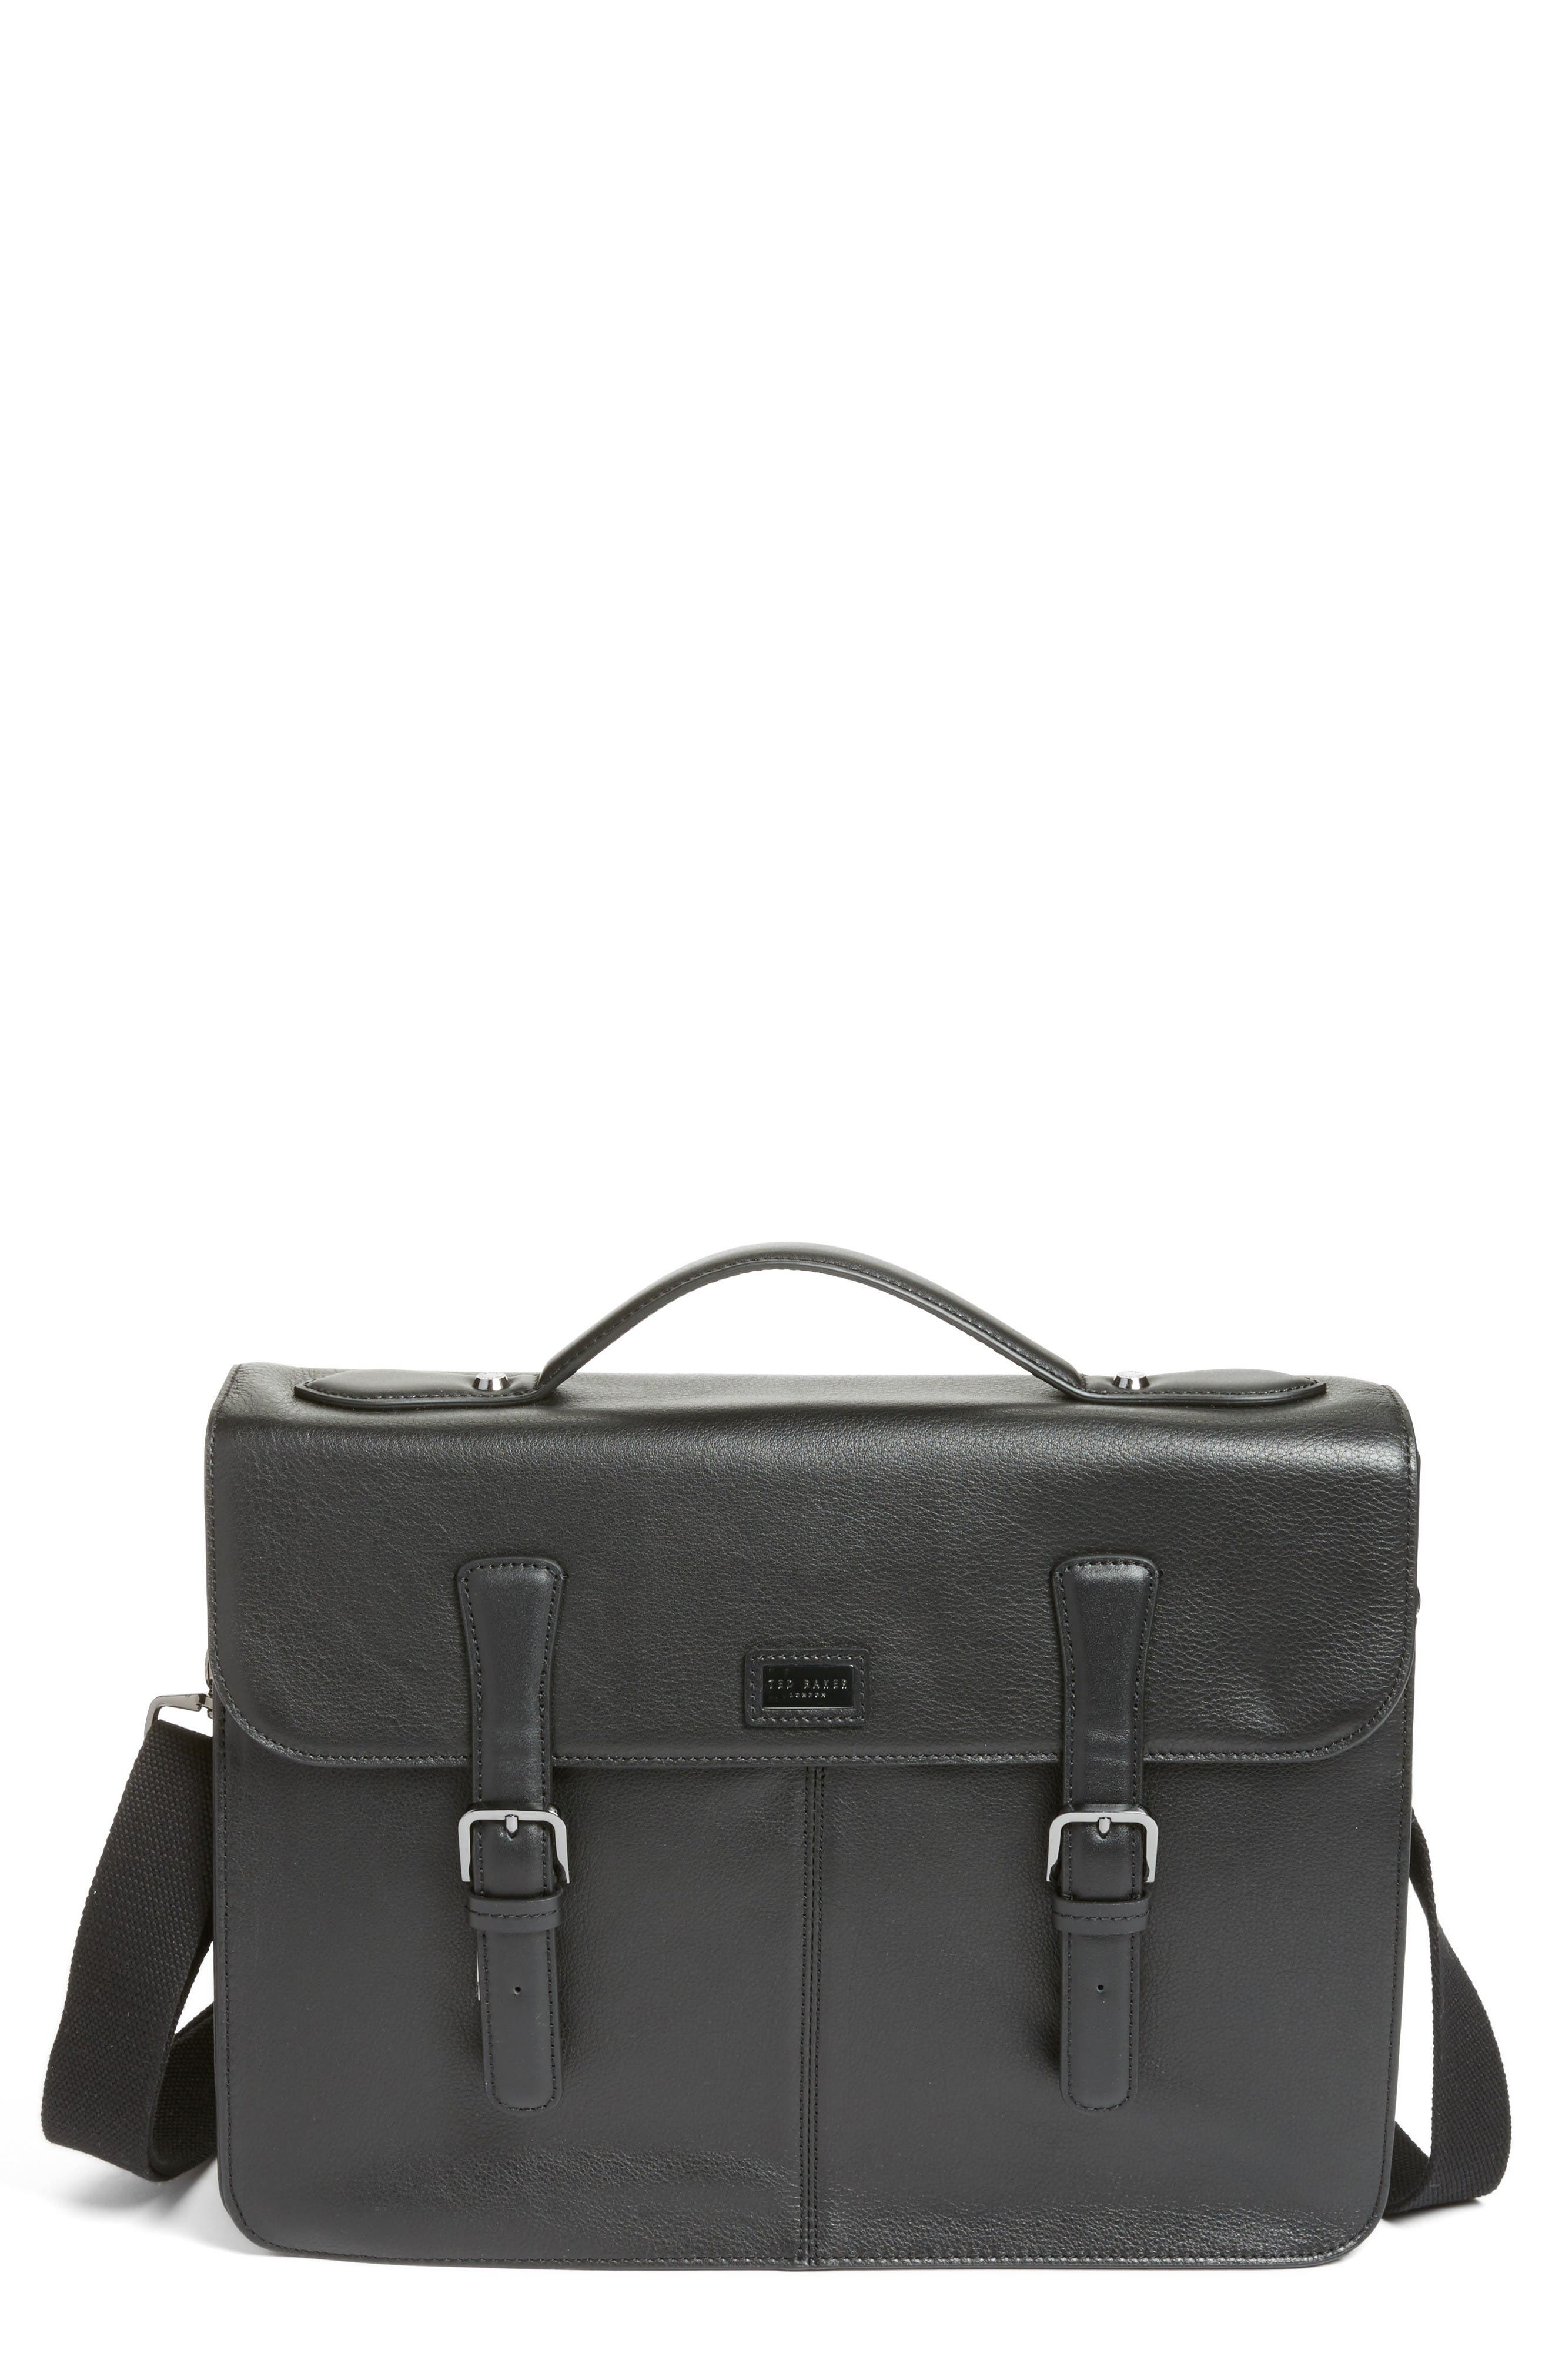 Alternate Image 1 Selected - Ted Baker London Bengal Leather Satchel